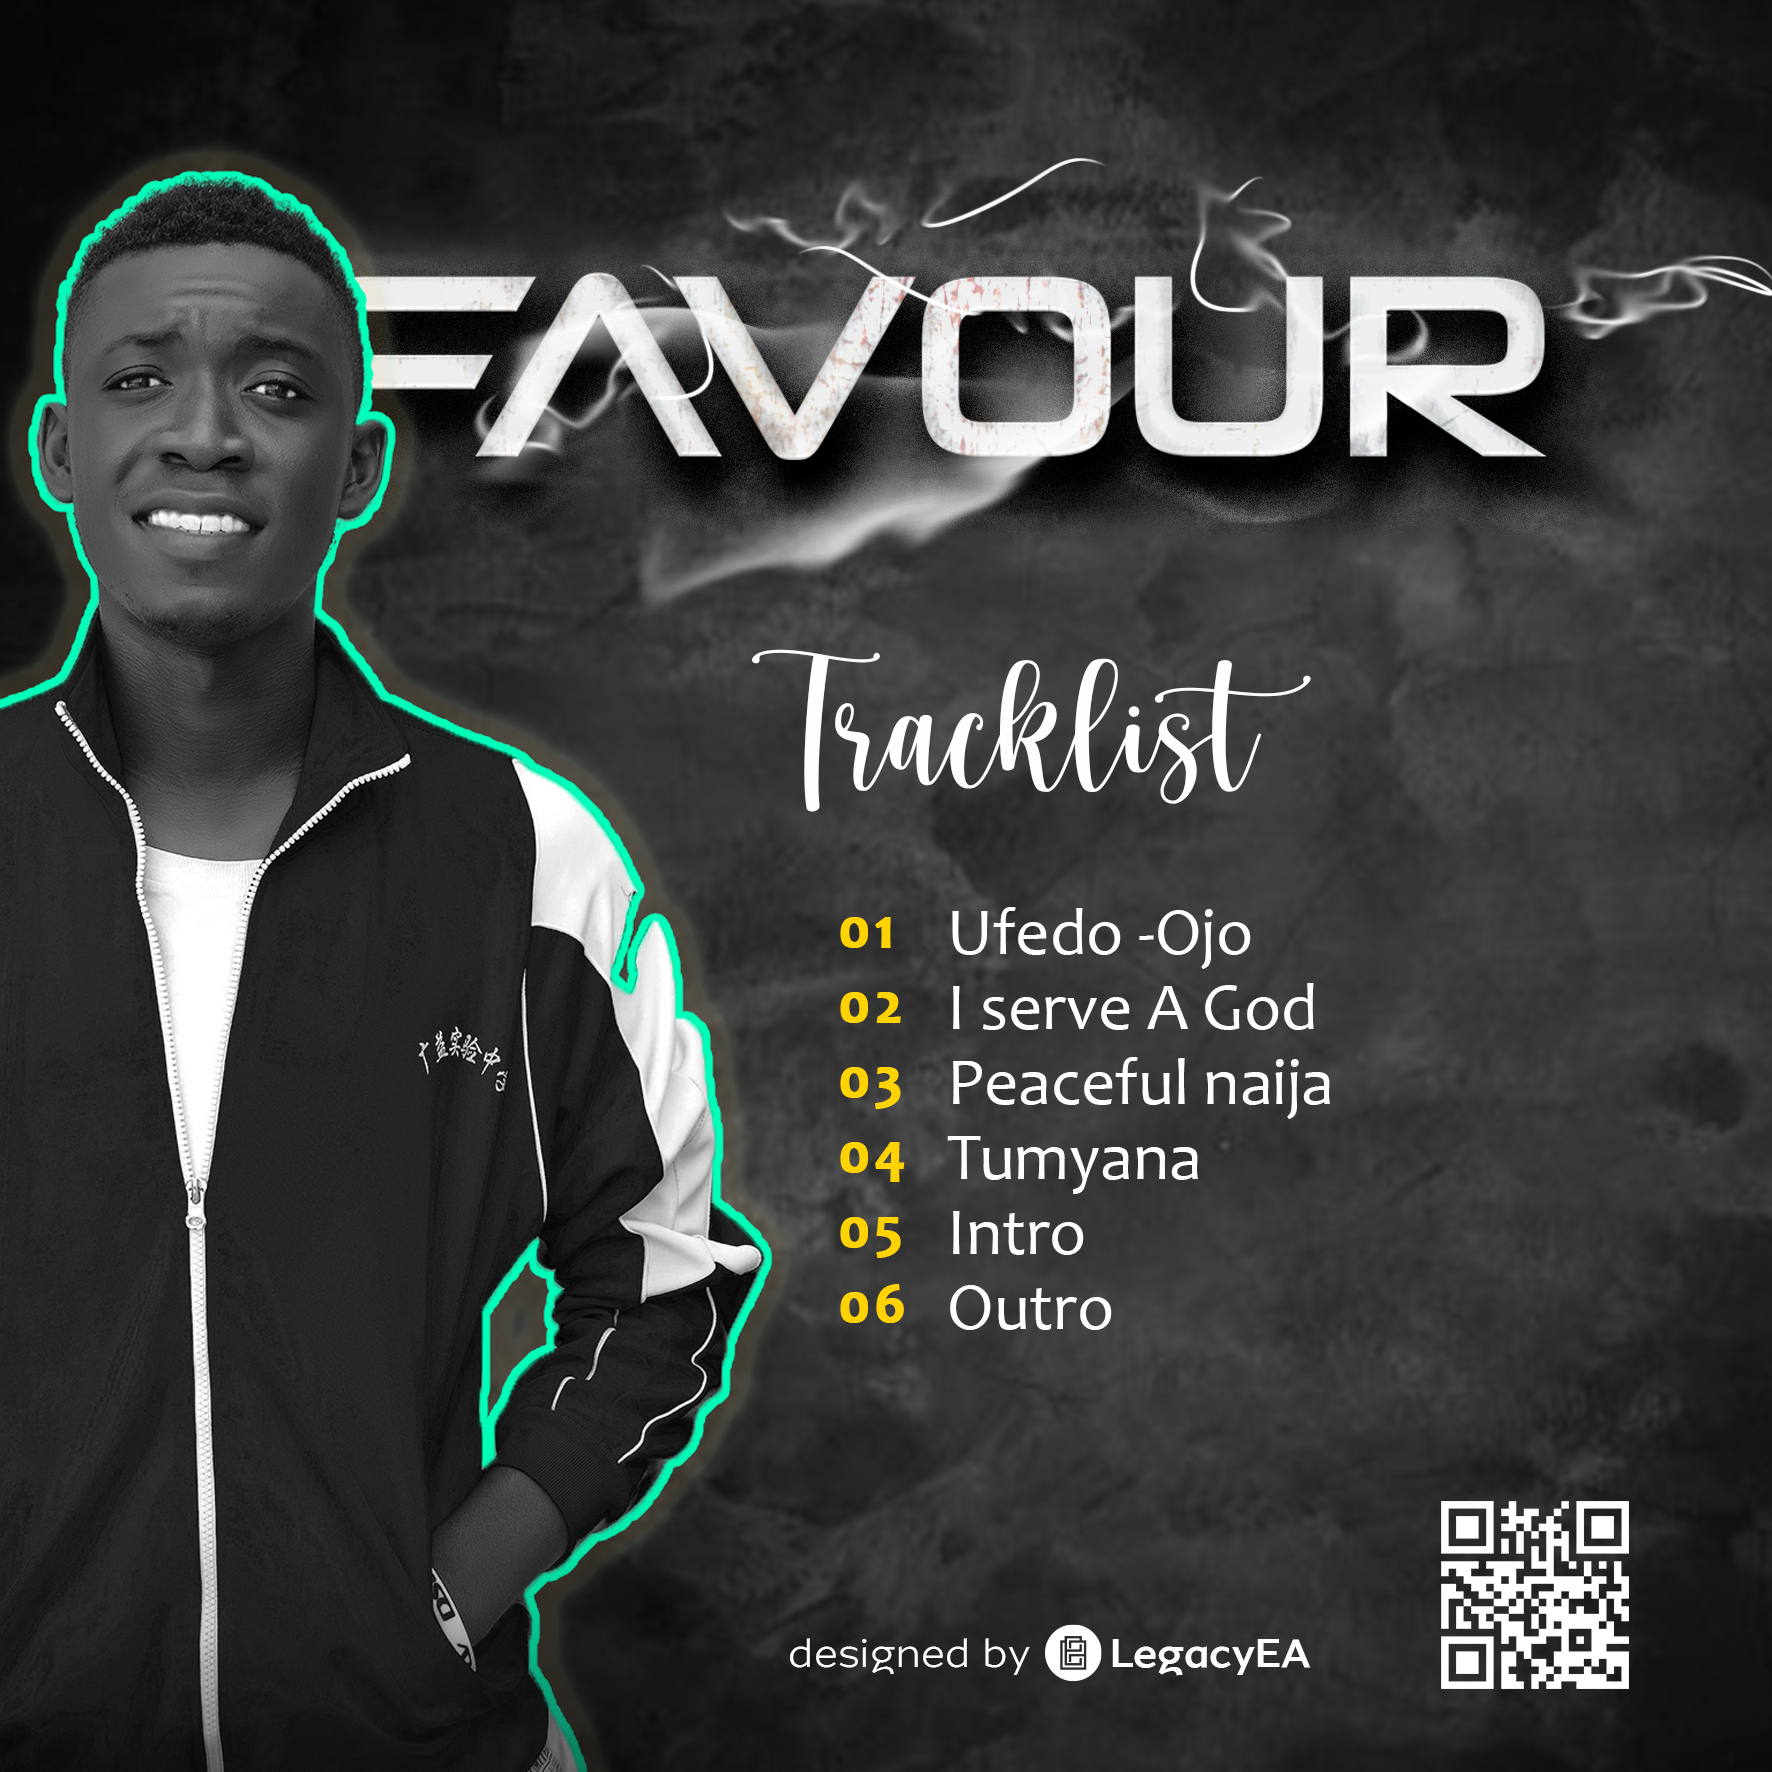 Mr. Smiles - Favour